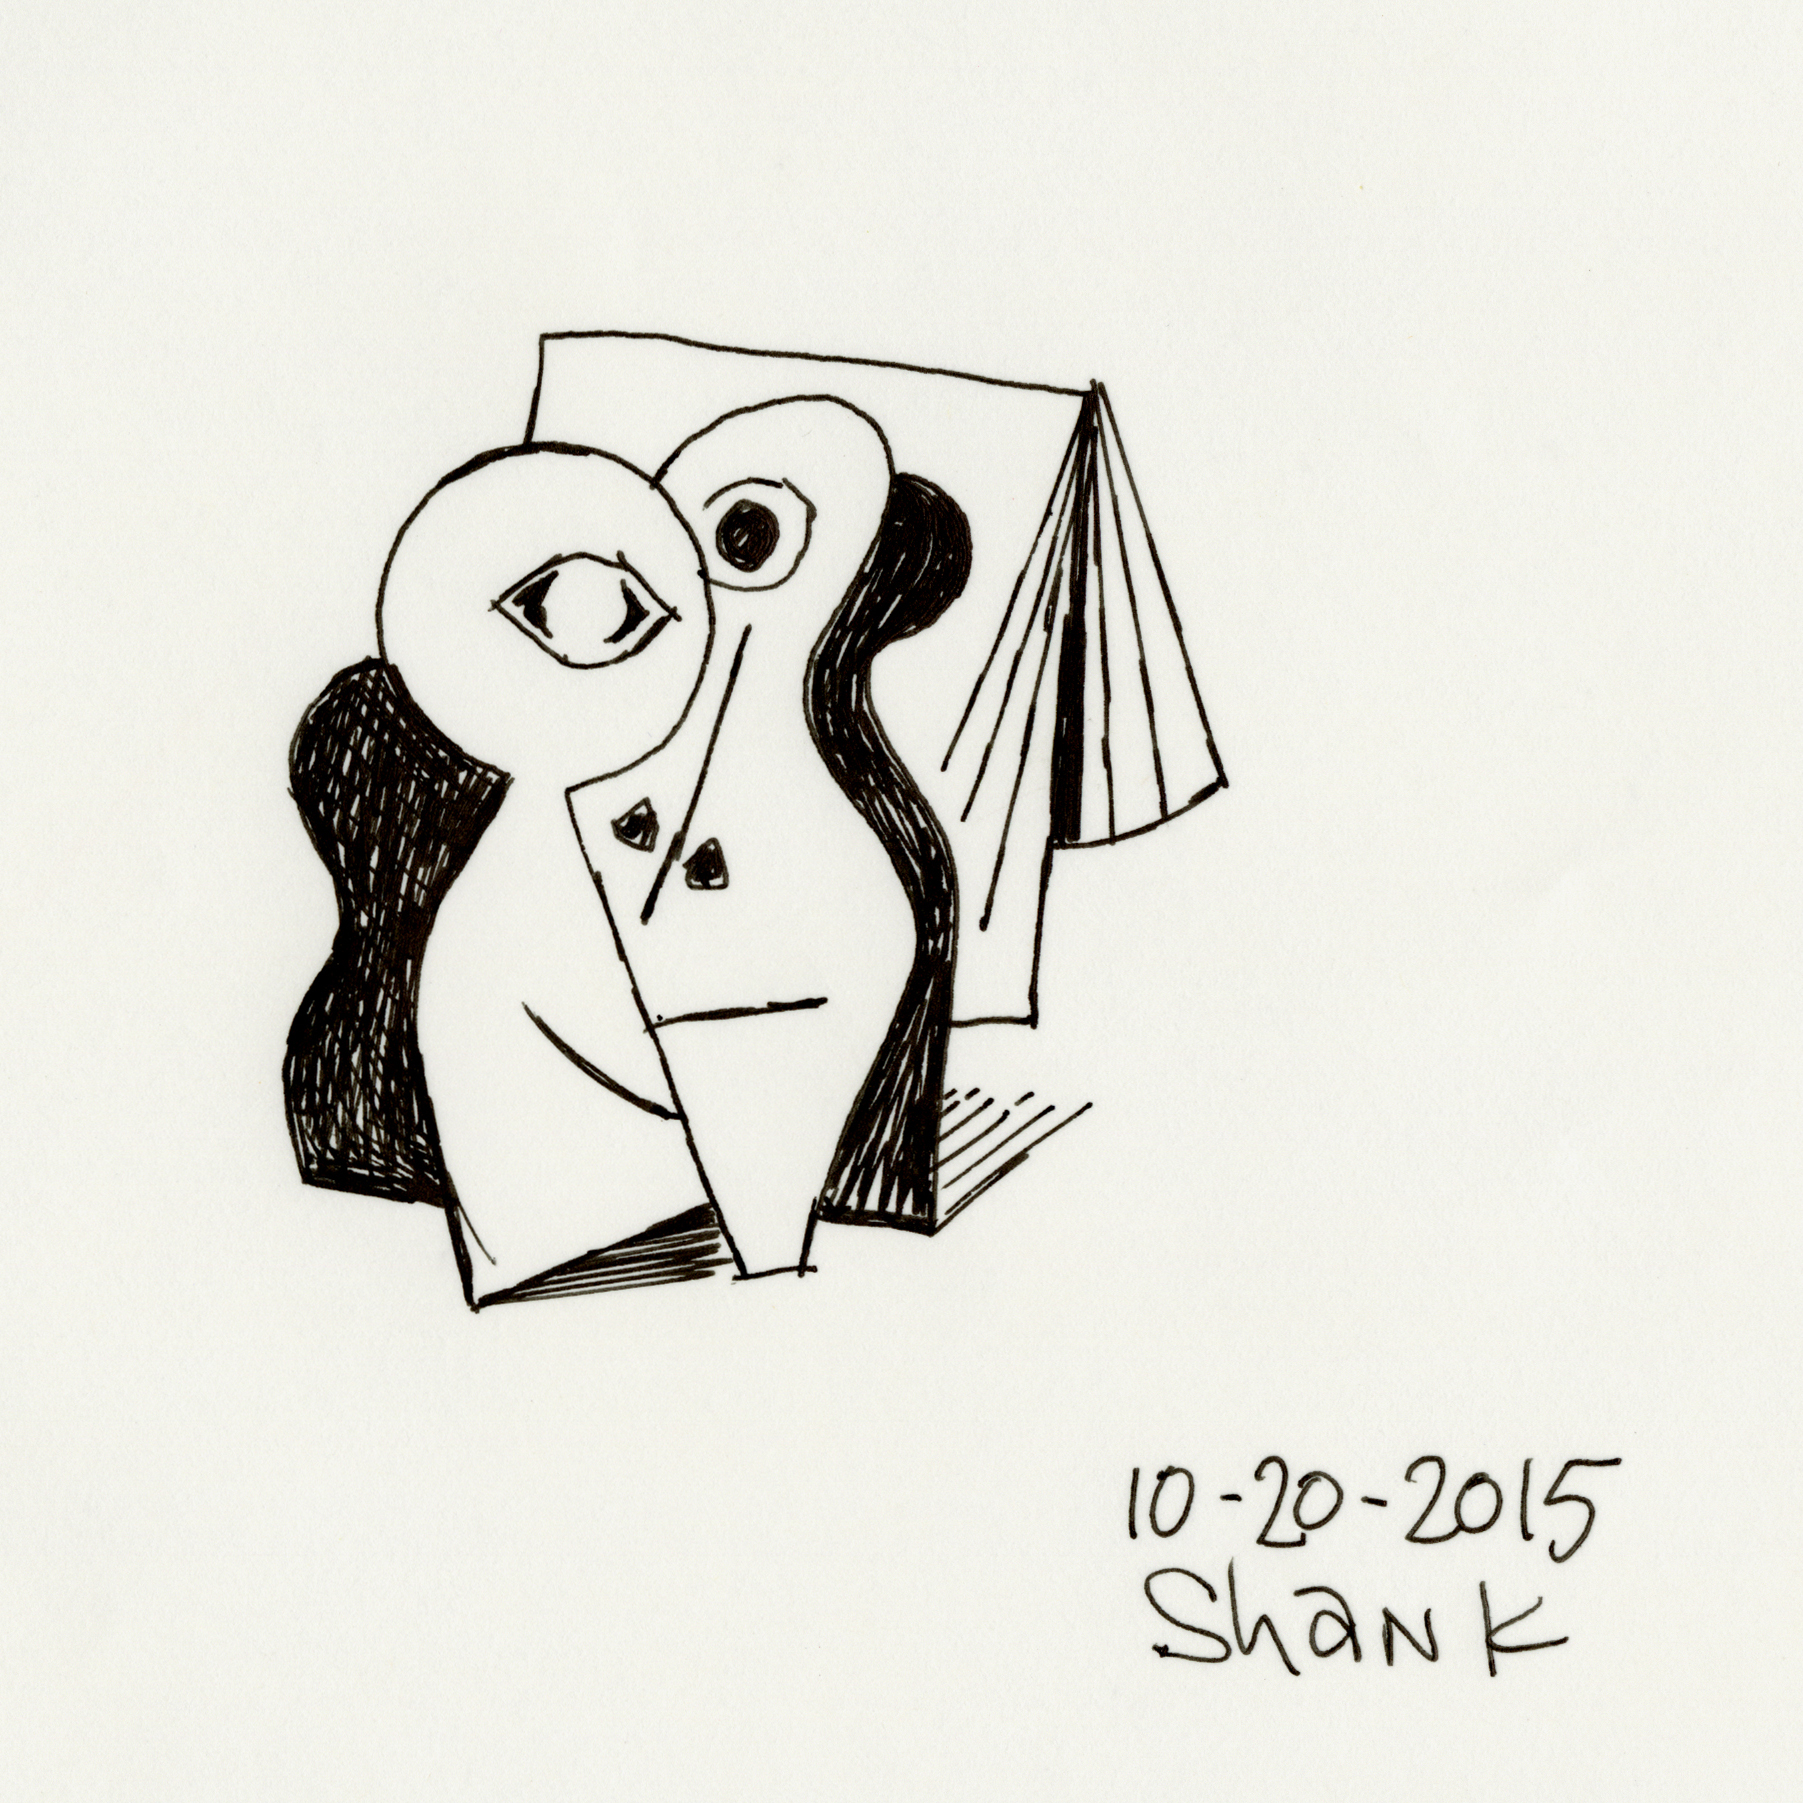 2015-10-20 Don Shank 02 Folded Face